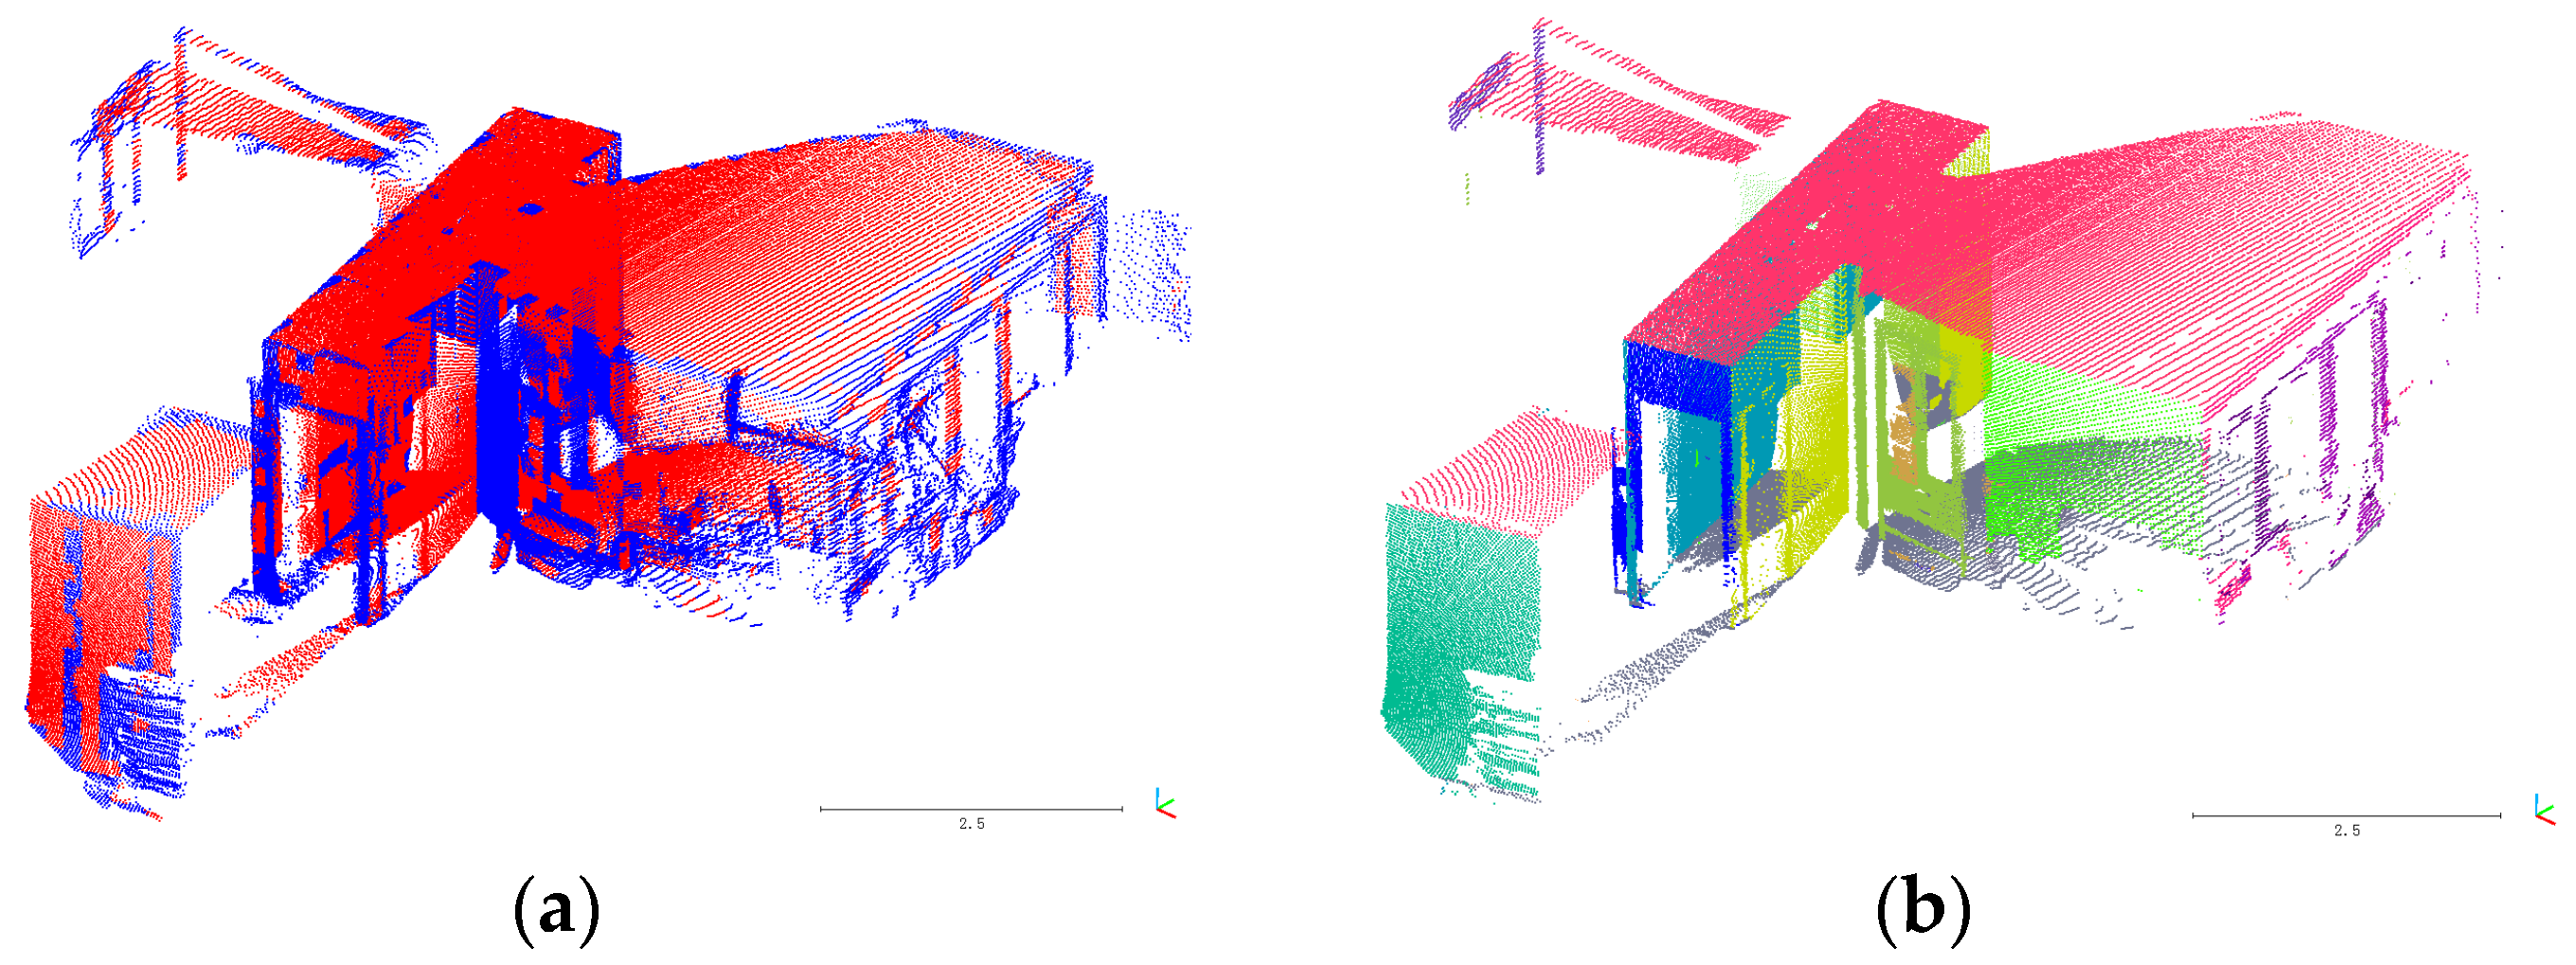 Remote Sensing   Free Full-Text   An Improved RANSAC for 3D